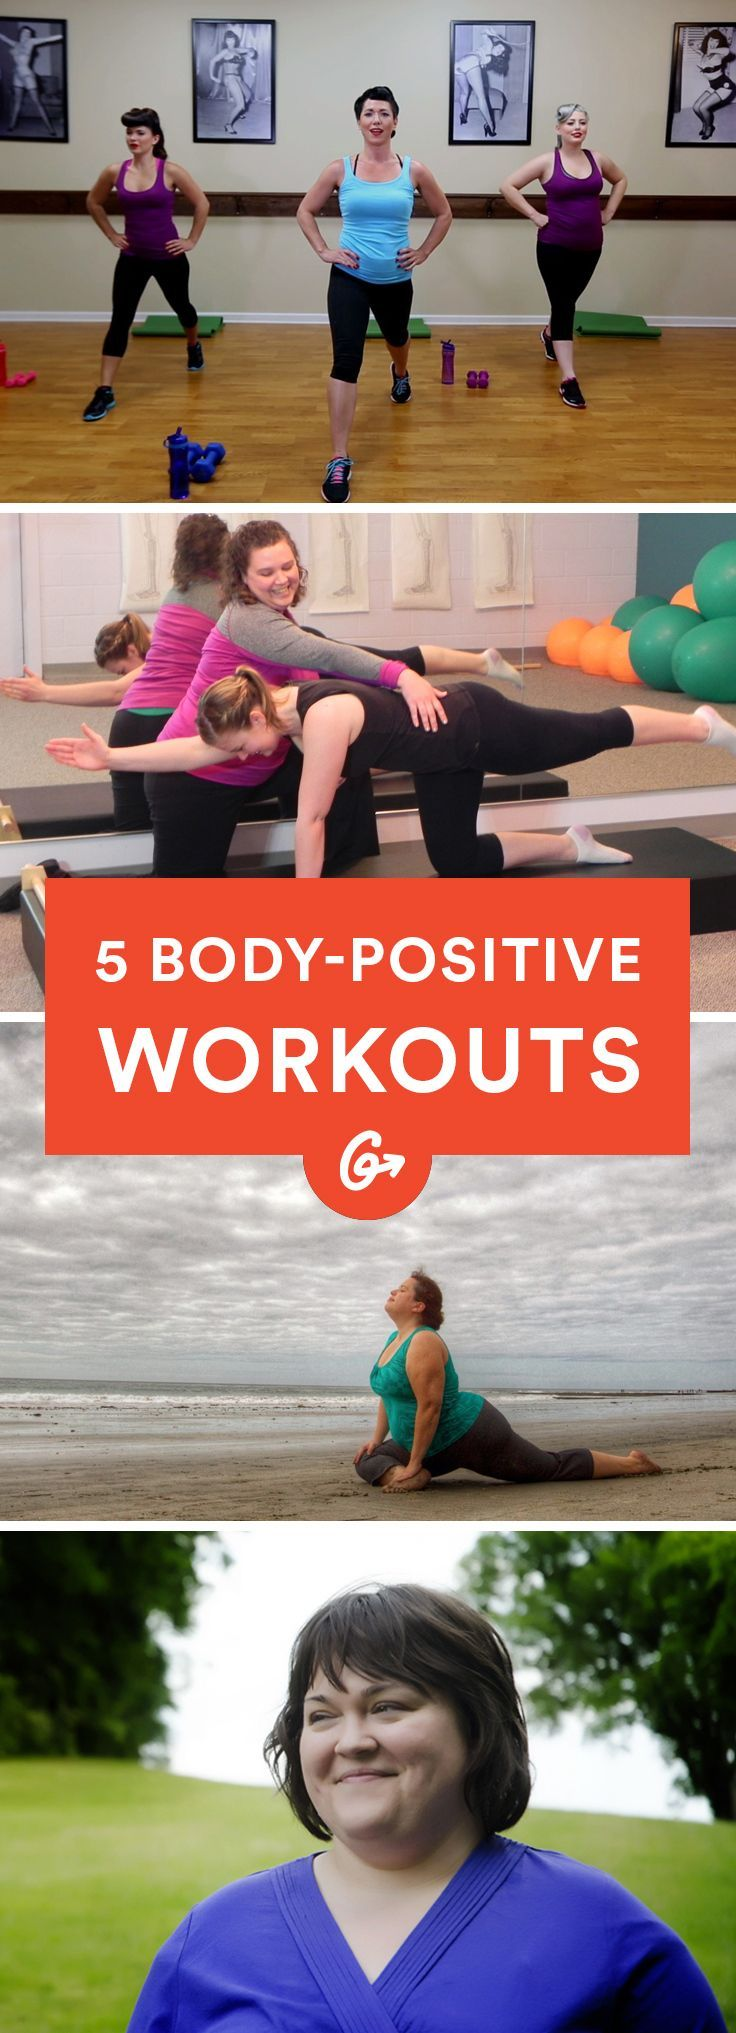 Body Image: Body-Positive Workouts to Try Body Image: Body-Positive Workouts to Try new foto